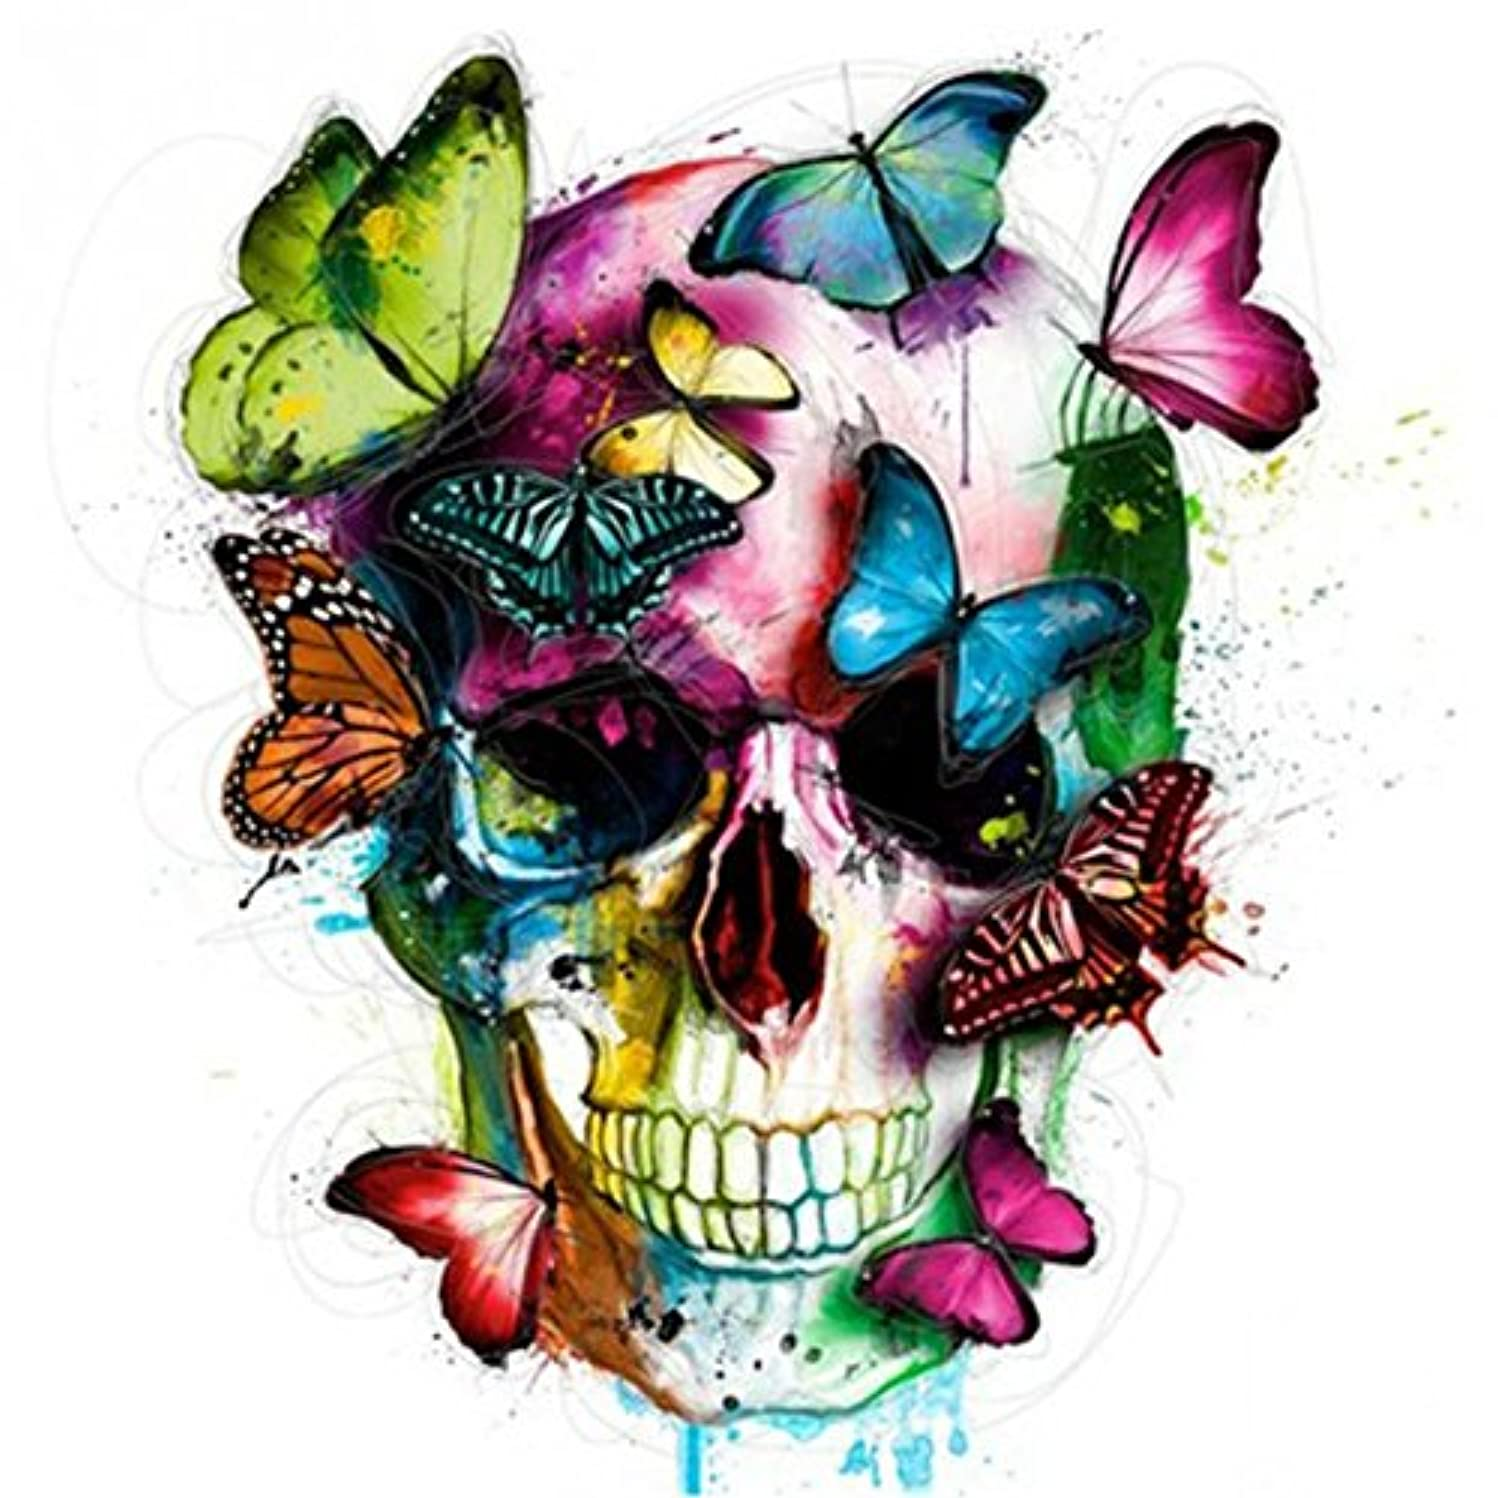 Farsla Butterfly Skull 5D DIY Diamond Home Decor Picture full round Rhinestone Colorful Portrait Mosaic Needlework Painting for Wall Decor 12X12inch